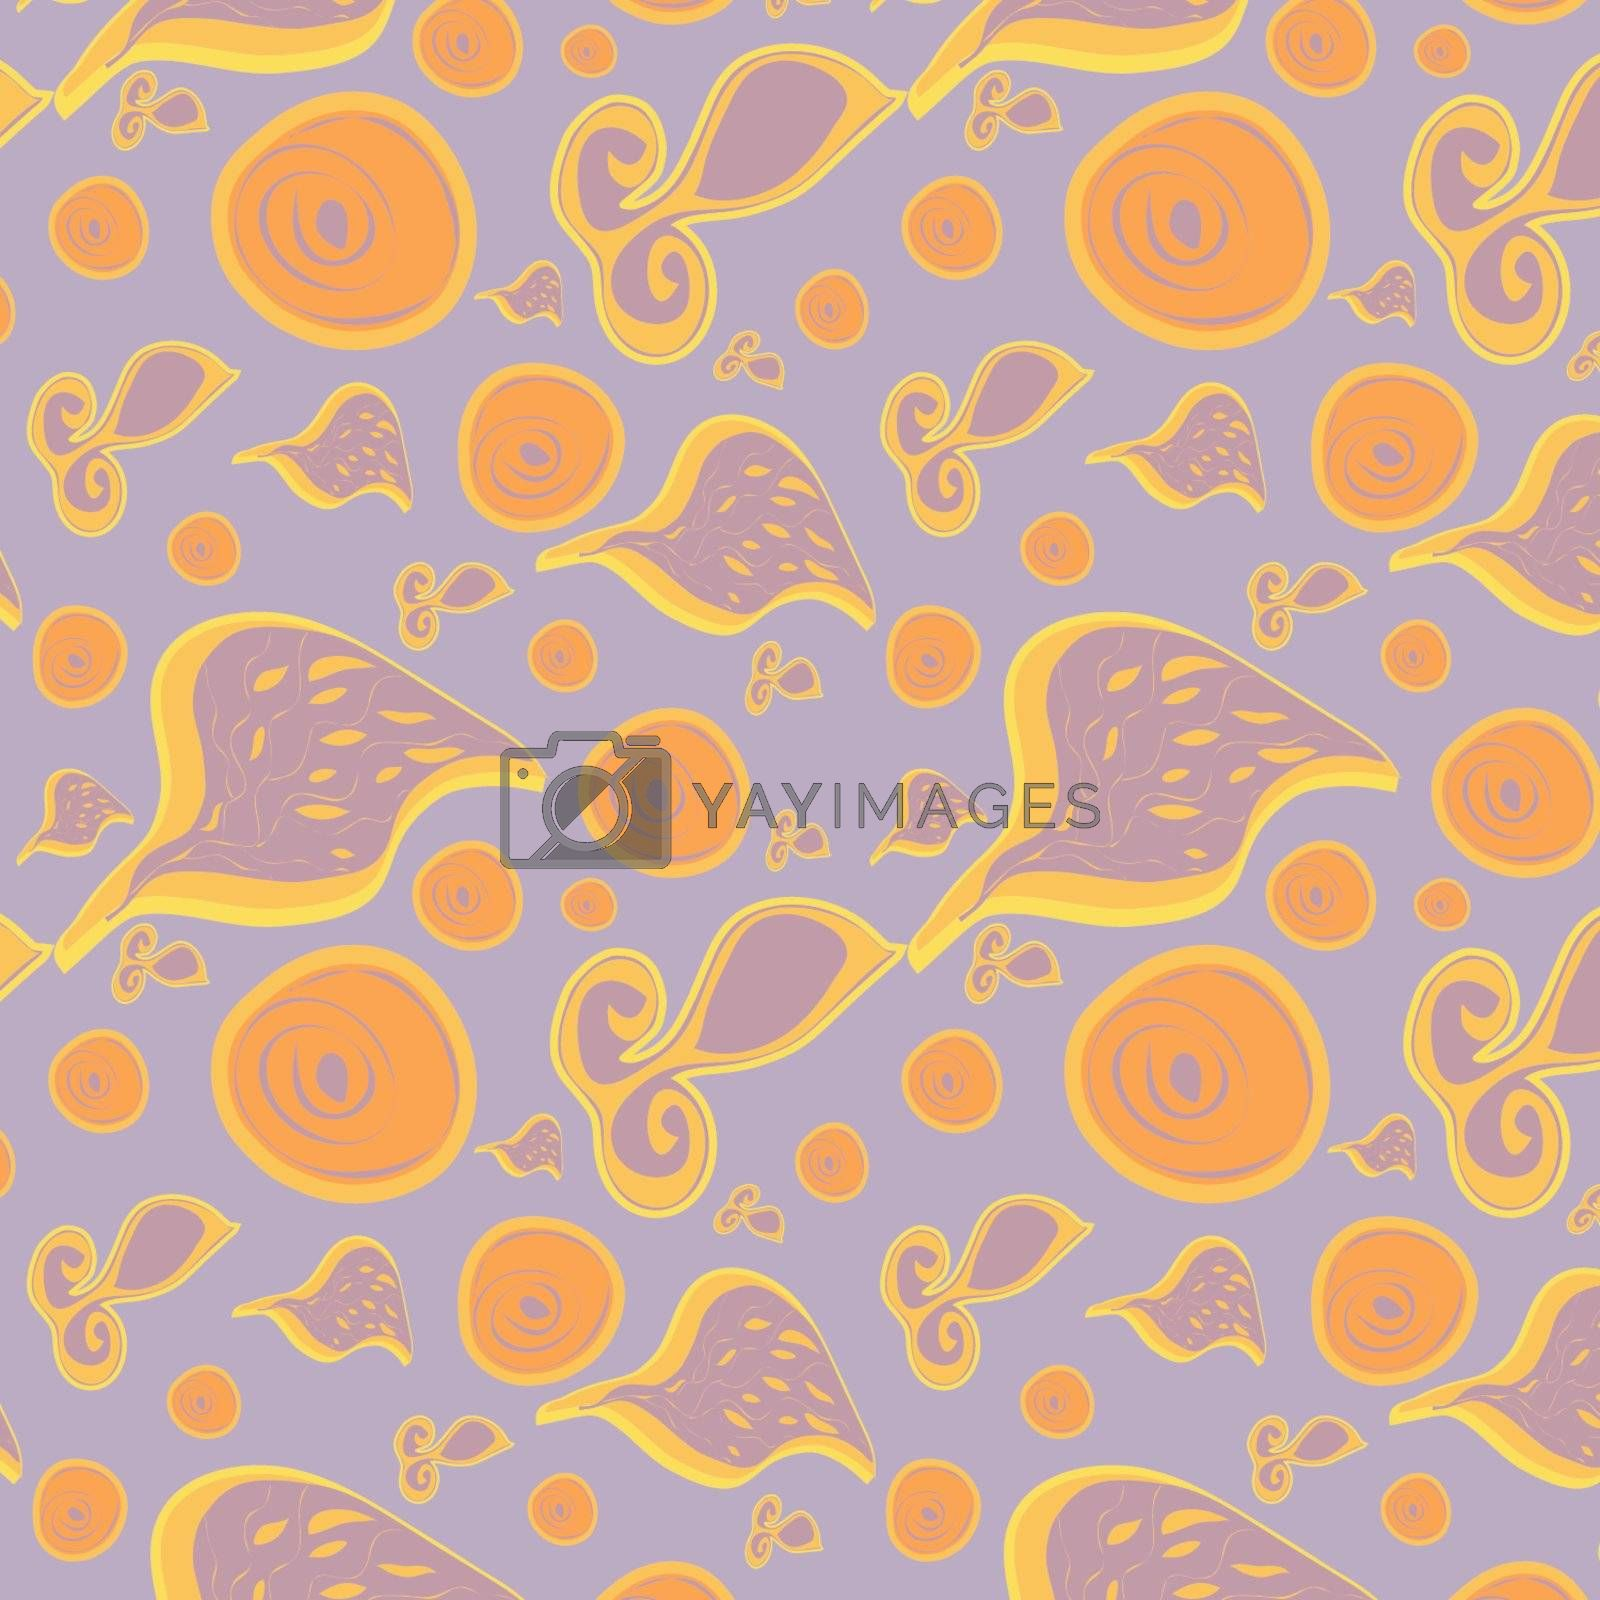 Abstract seamless background, vector, illustration